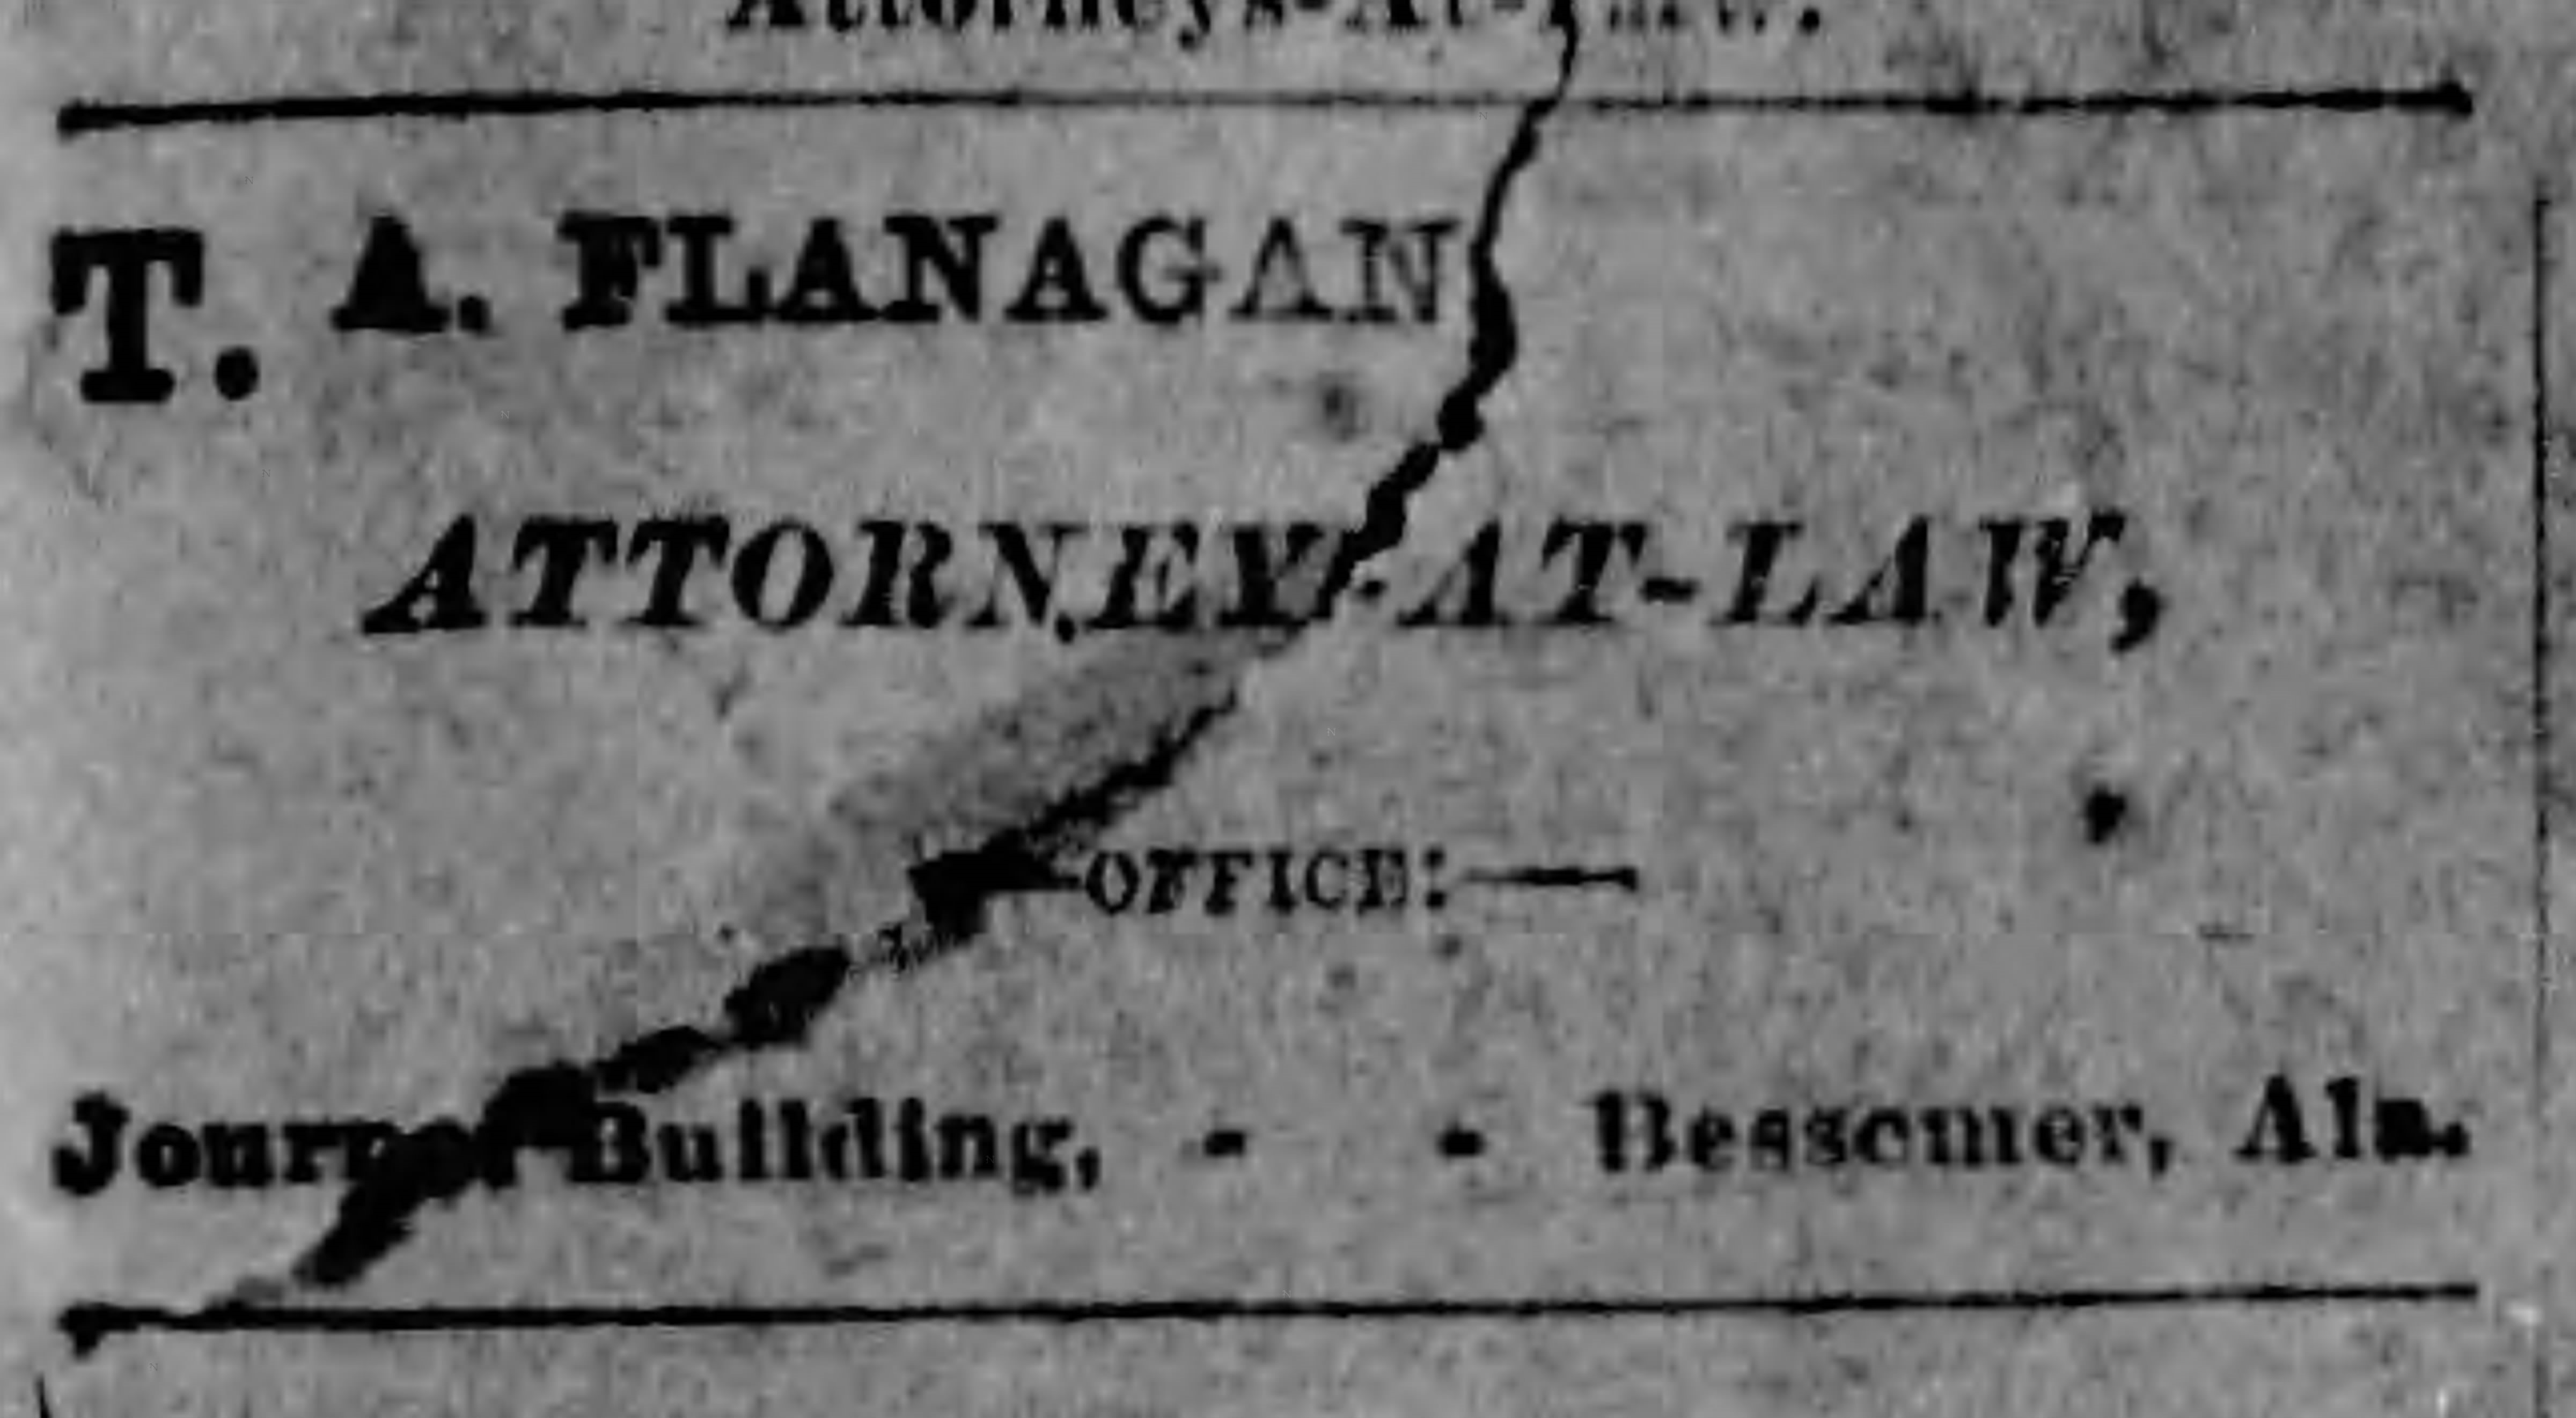 Patron - German must have had an additional meaning in Bessemer in 1888 according to this news article